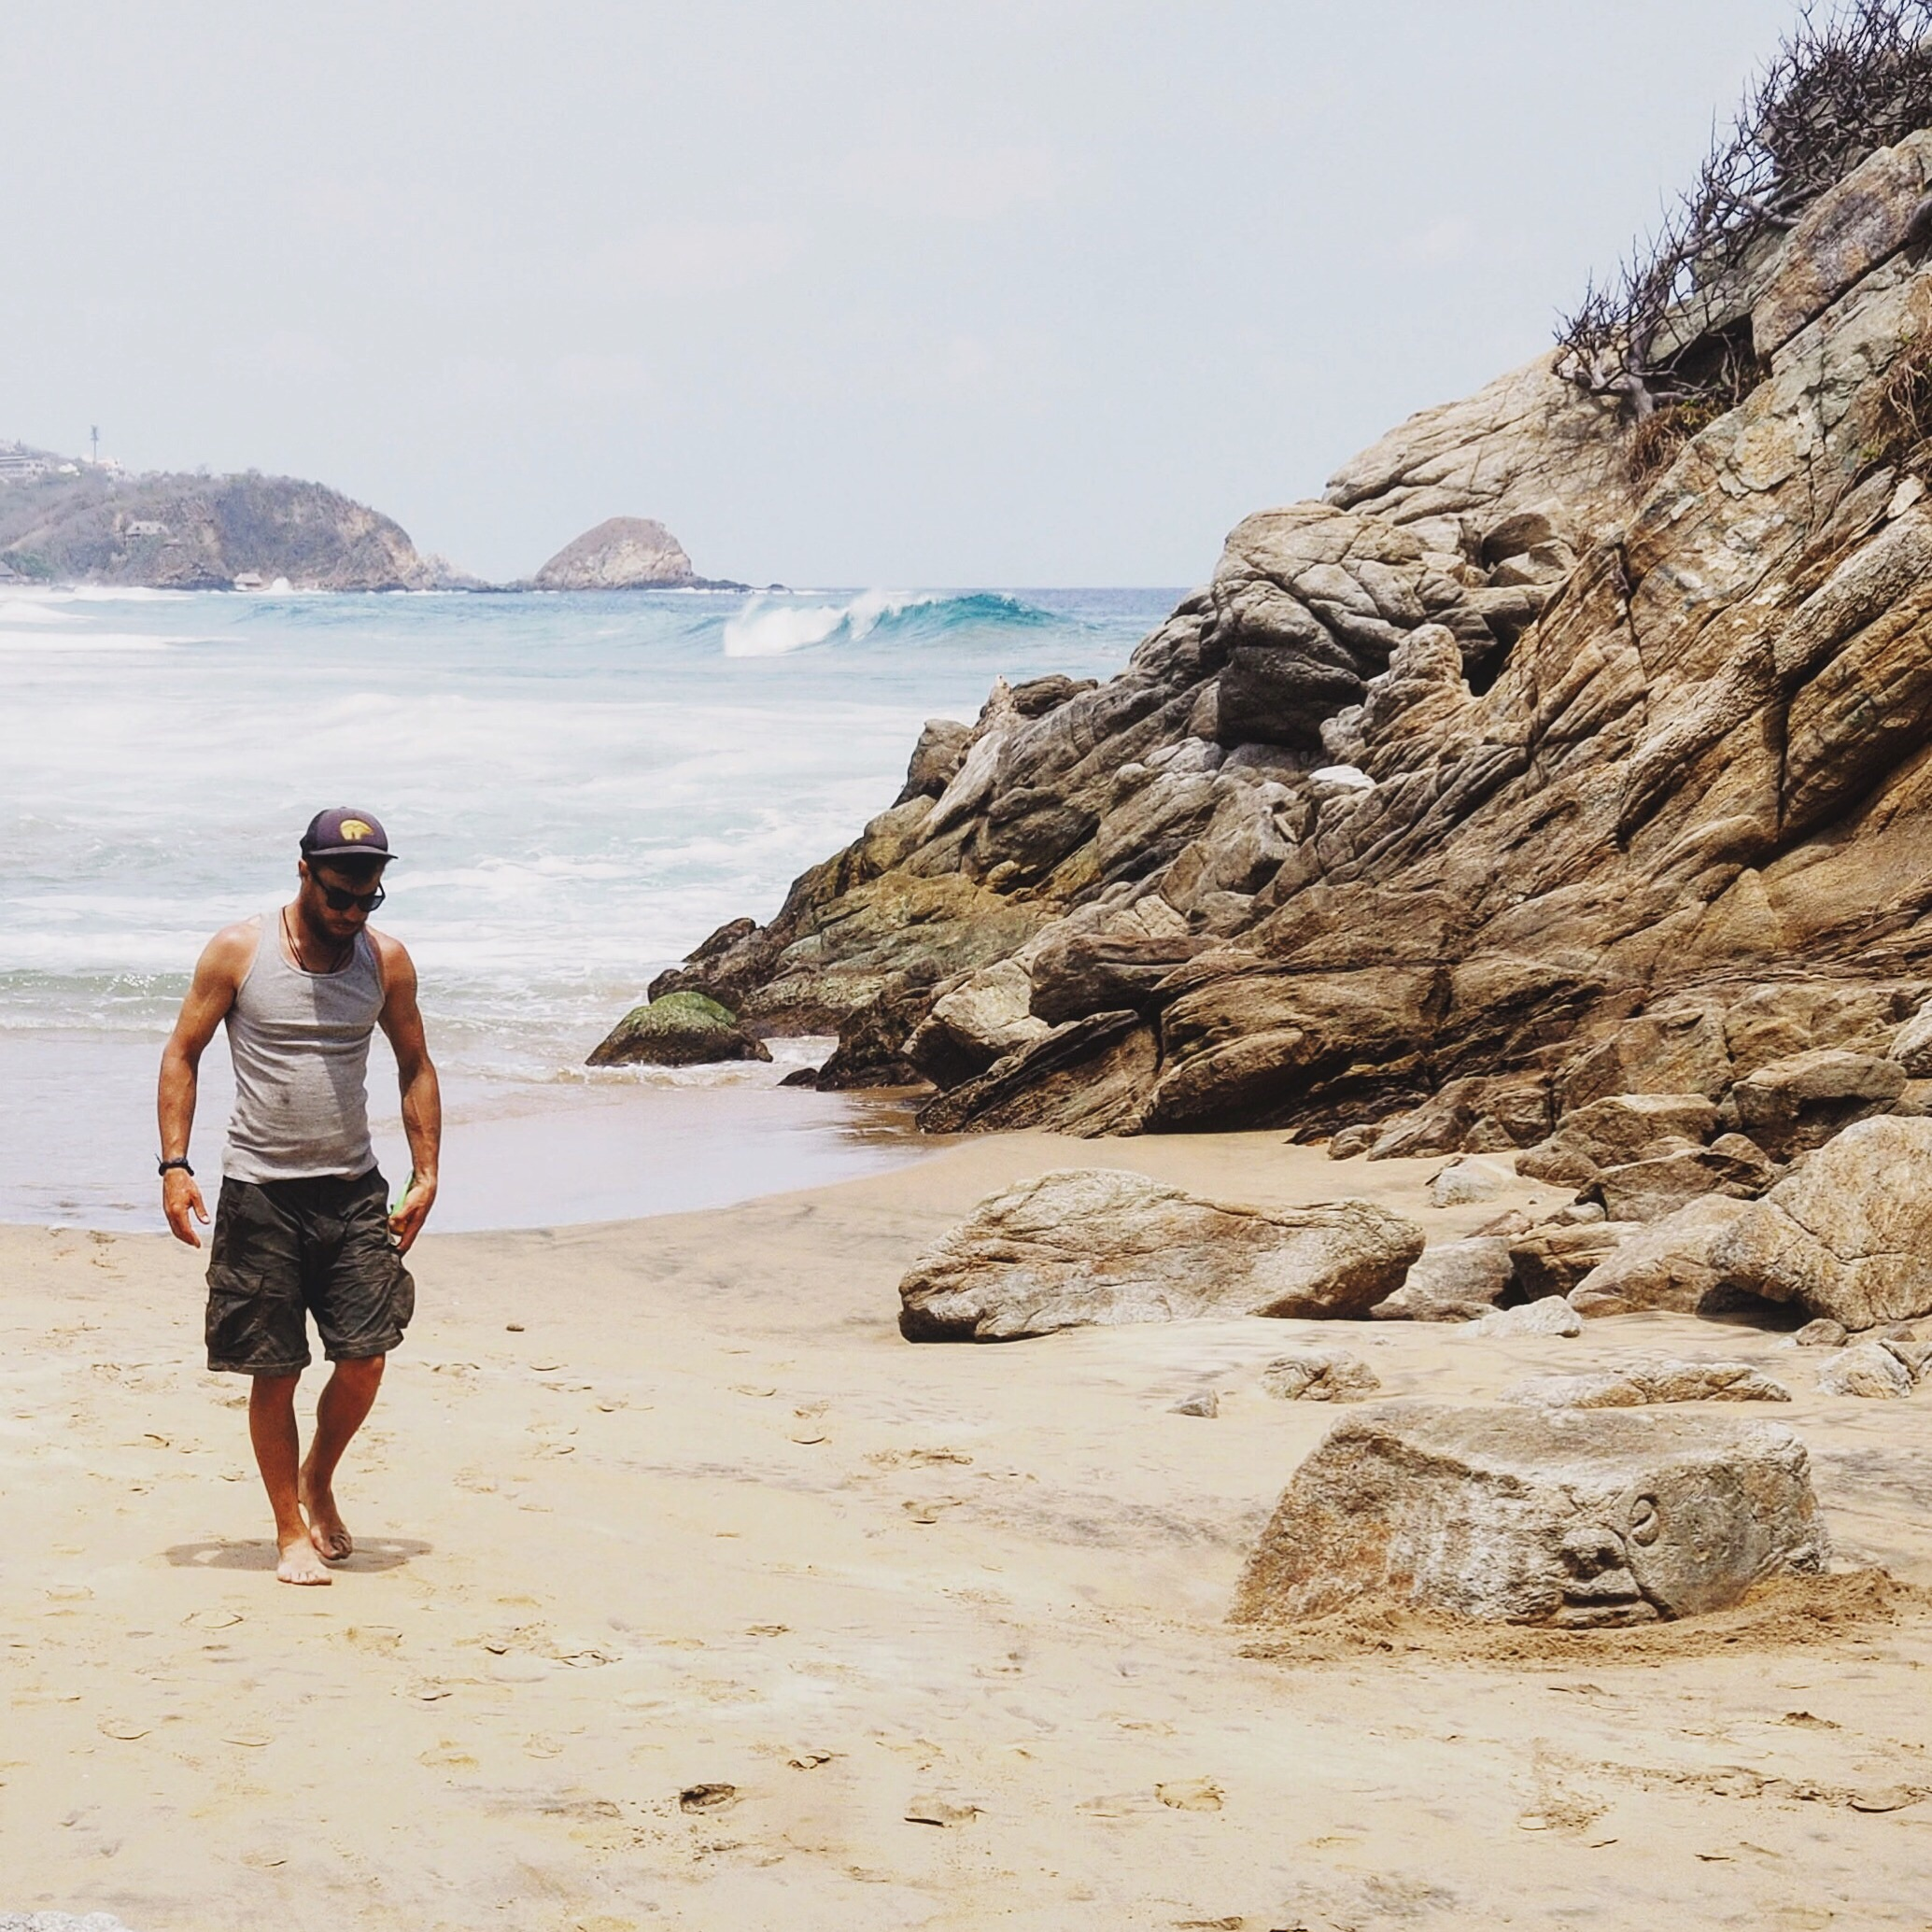 Zipolite - check out the carved face on the rock on the beach!